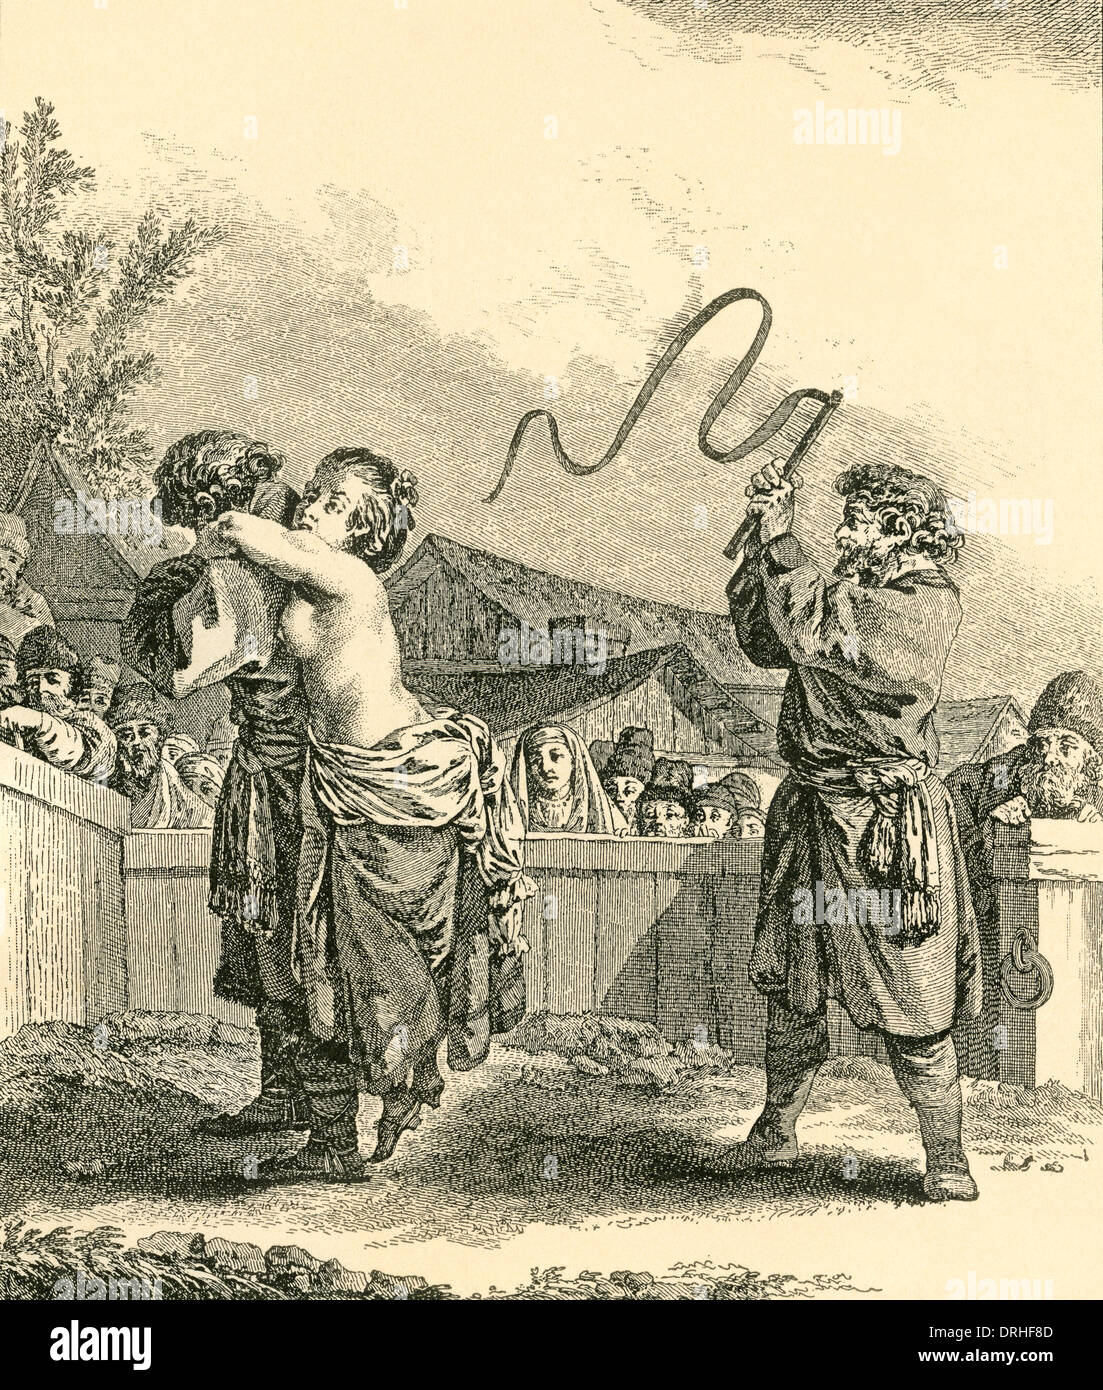 Whipping flogging woman